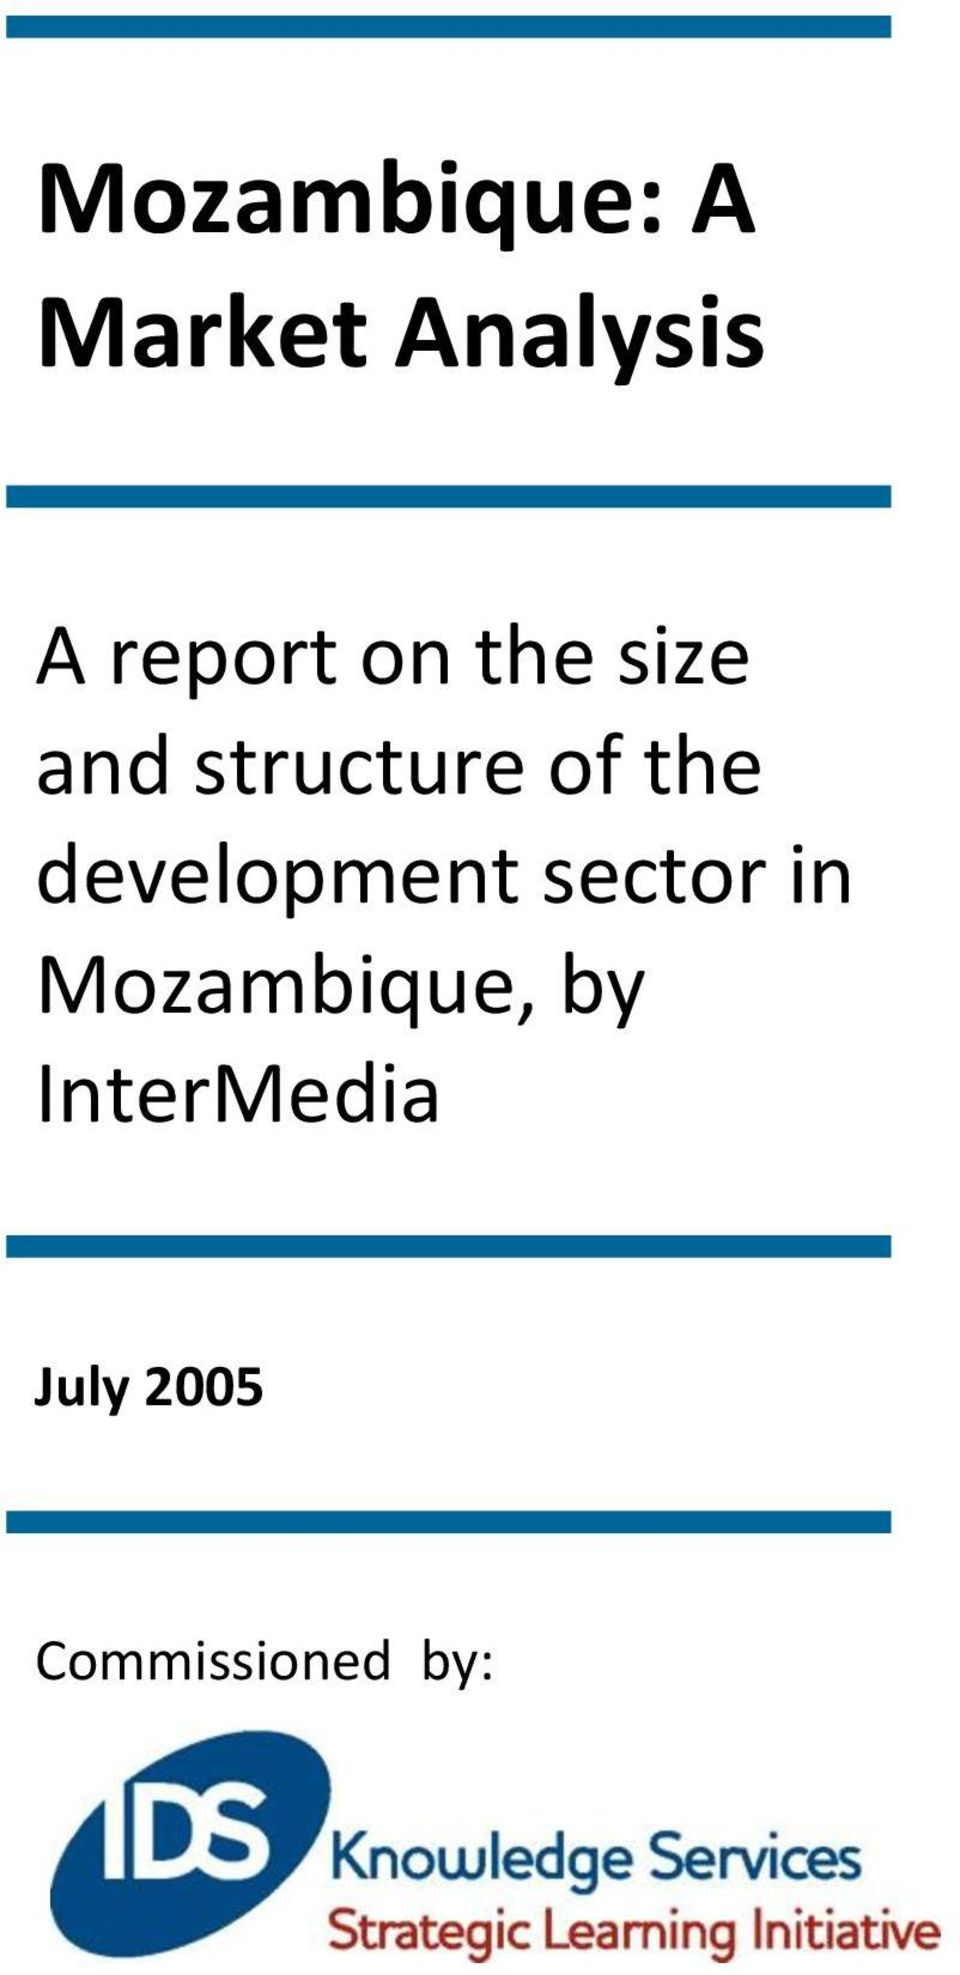 the development sector in